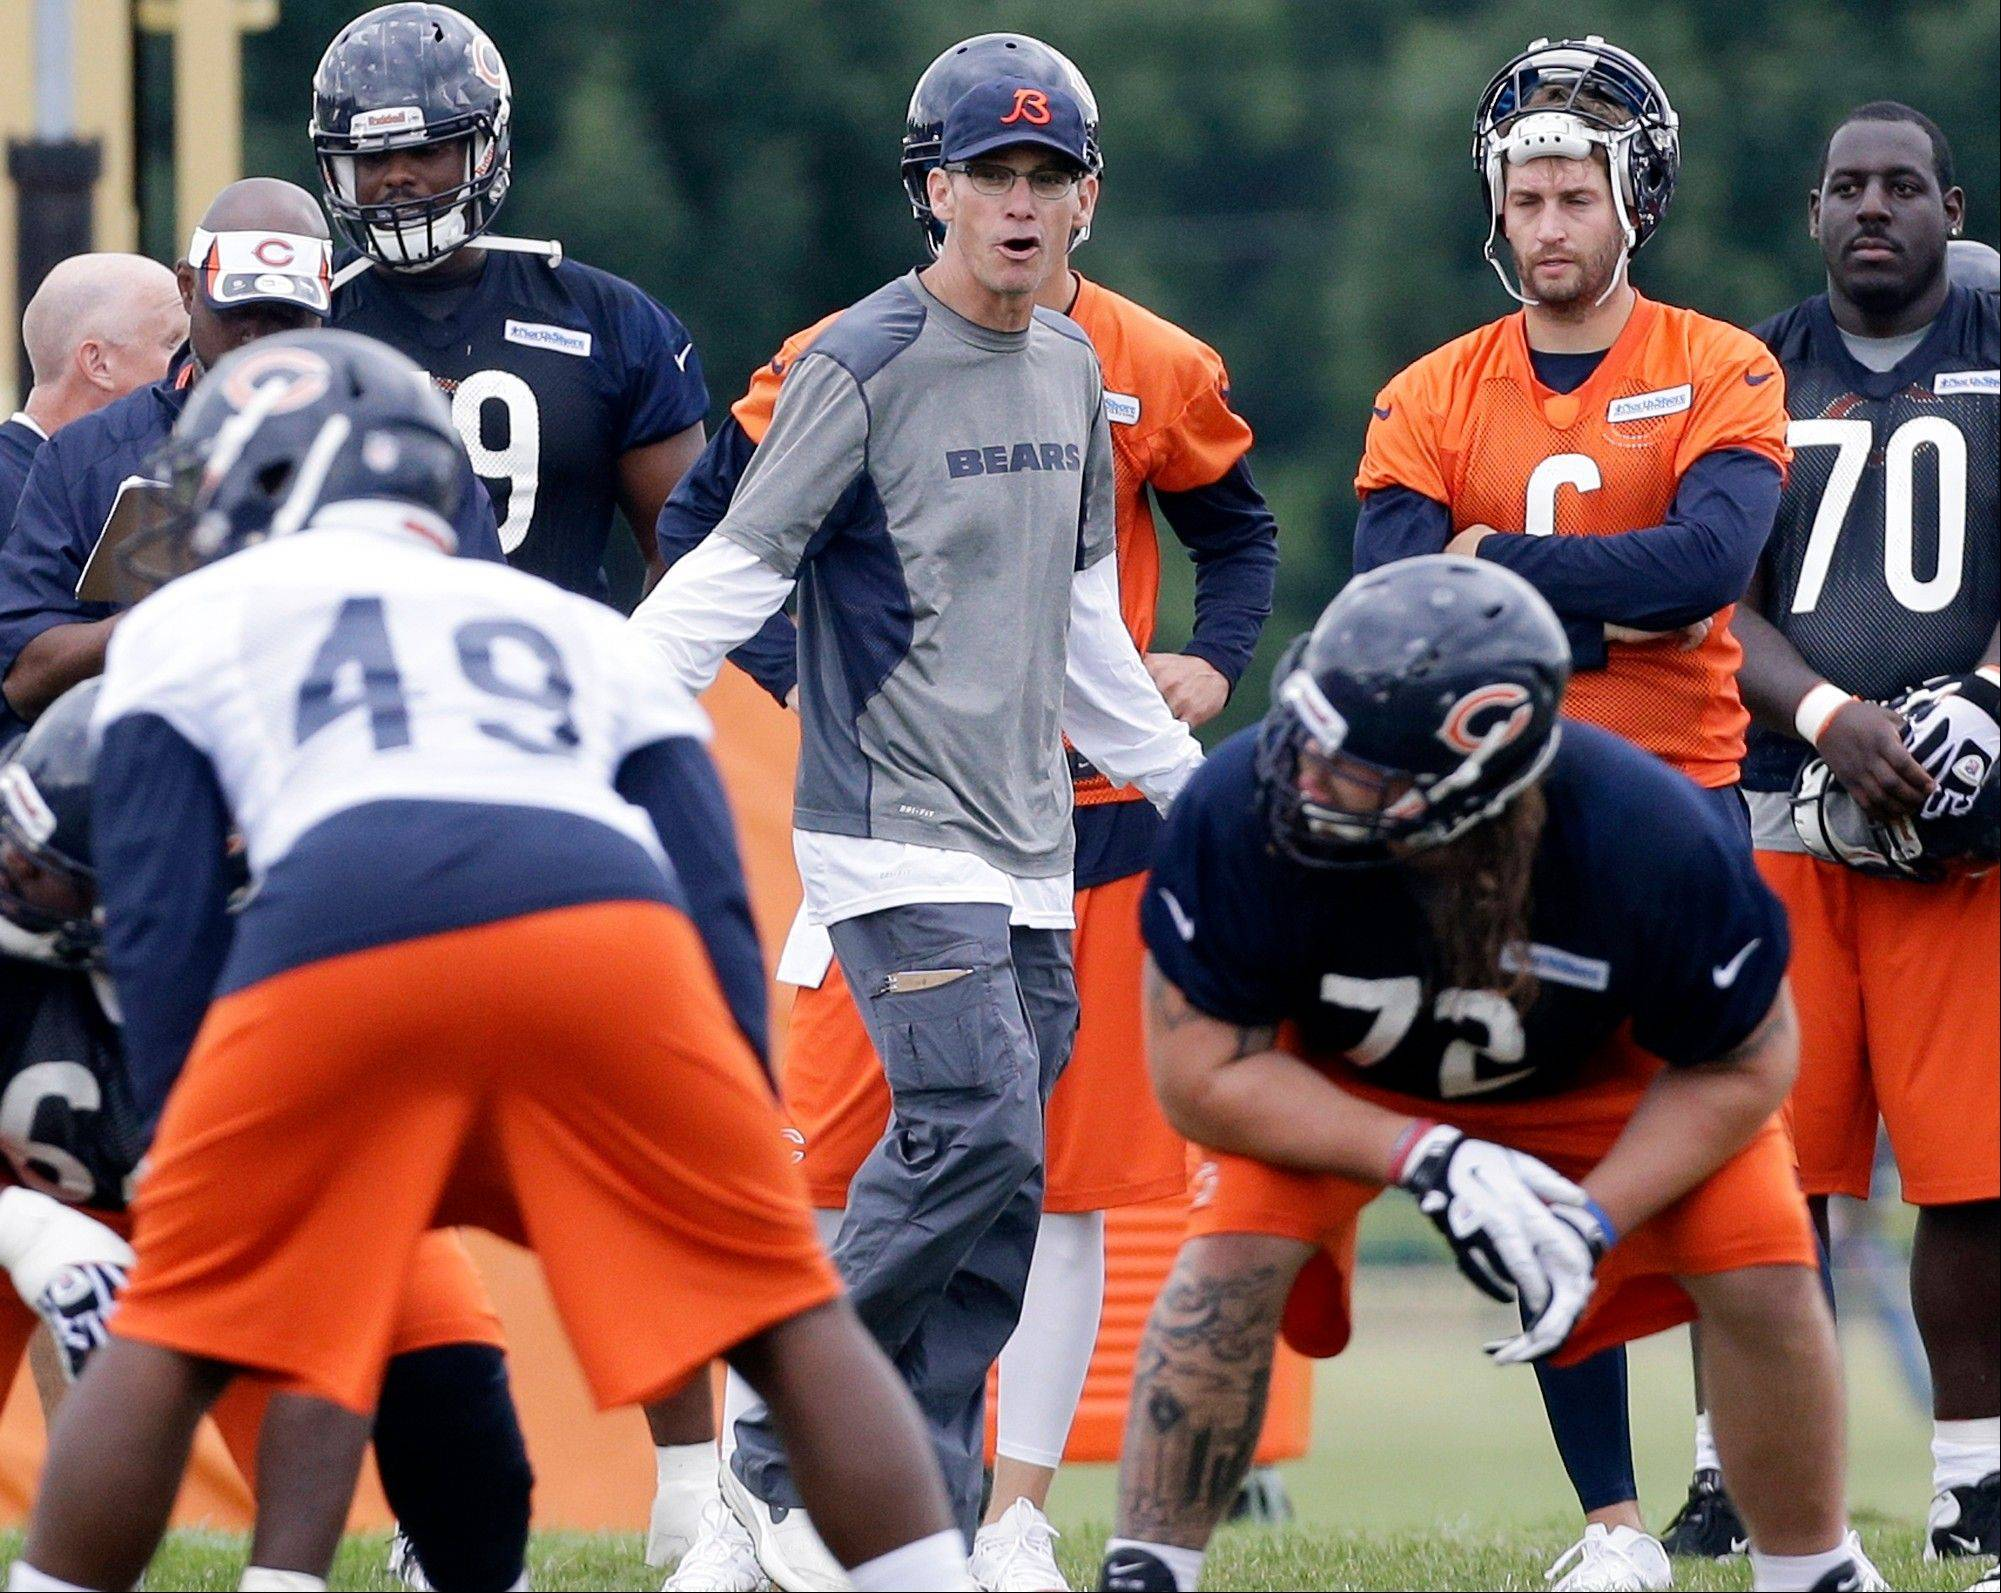 Chicago Bears head coach Marc Trestman, center, watches his team.